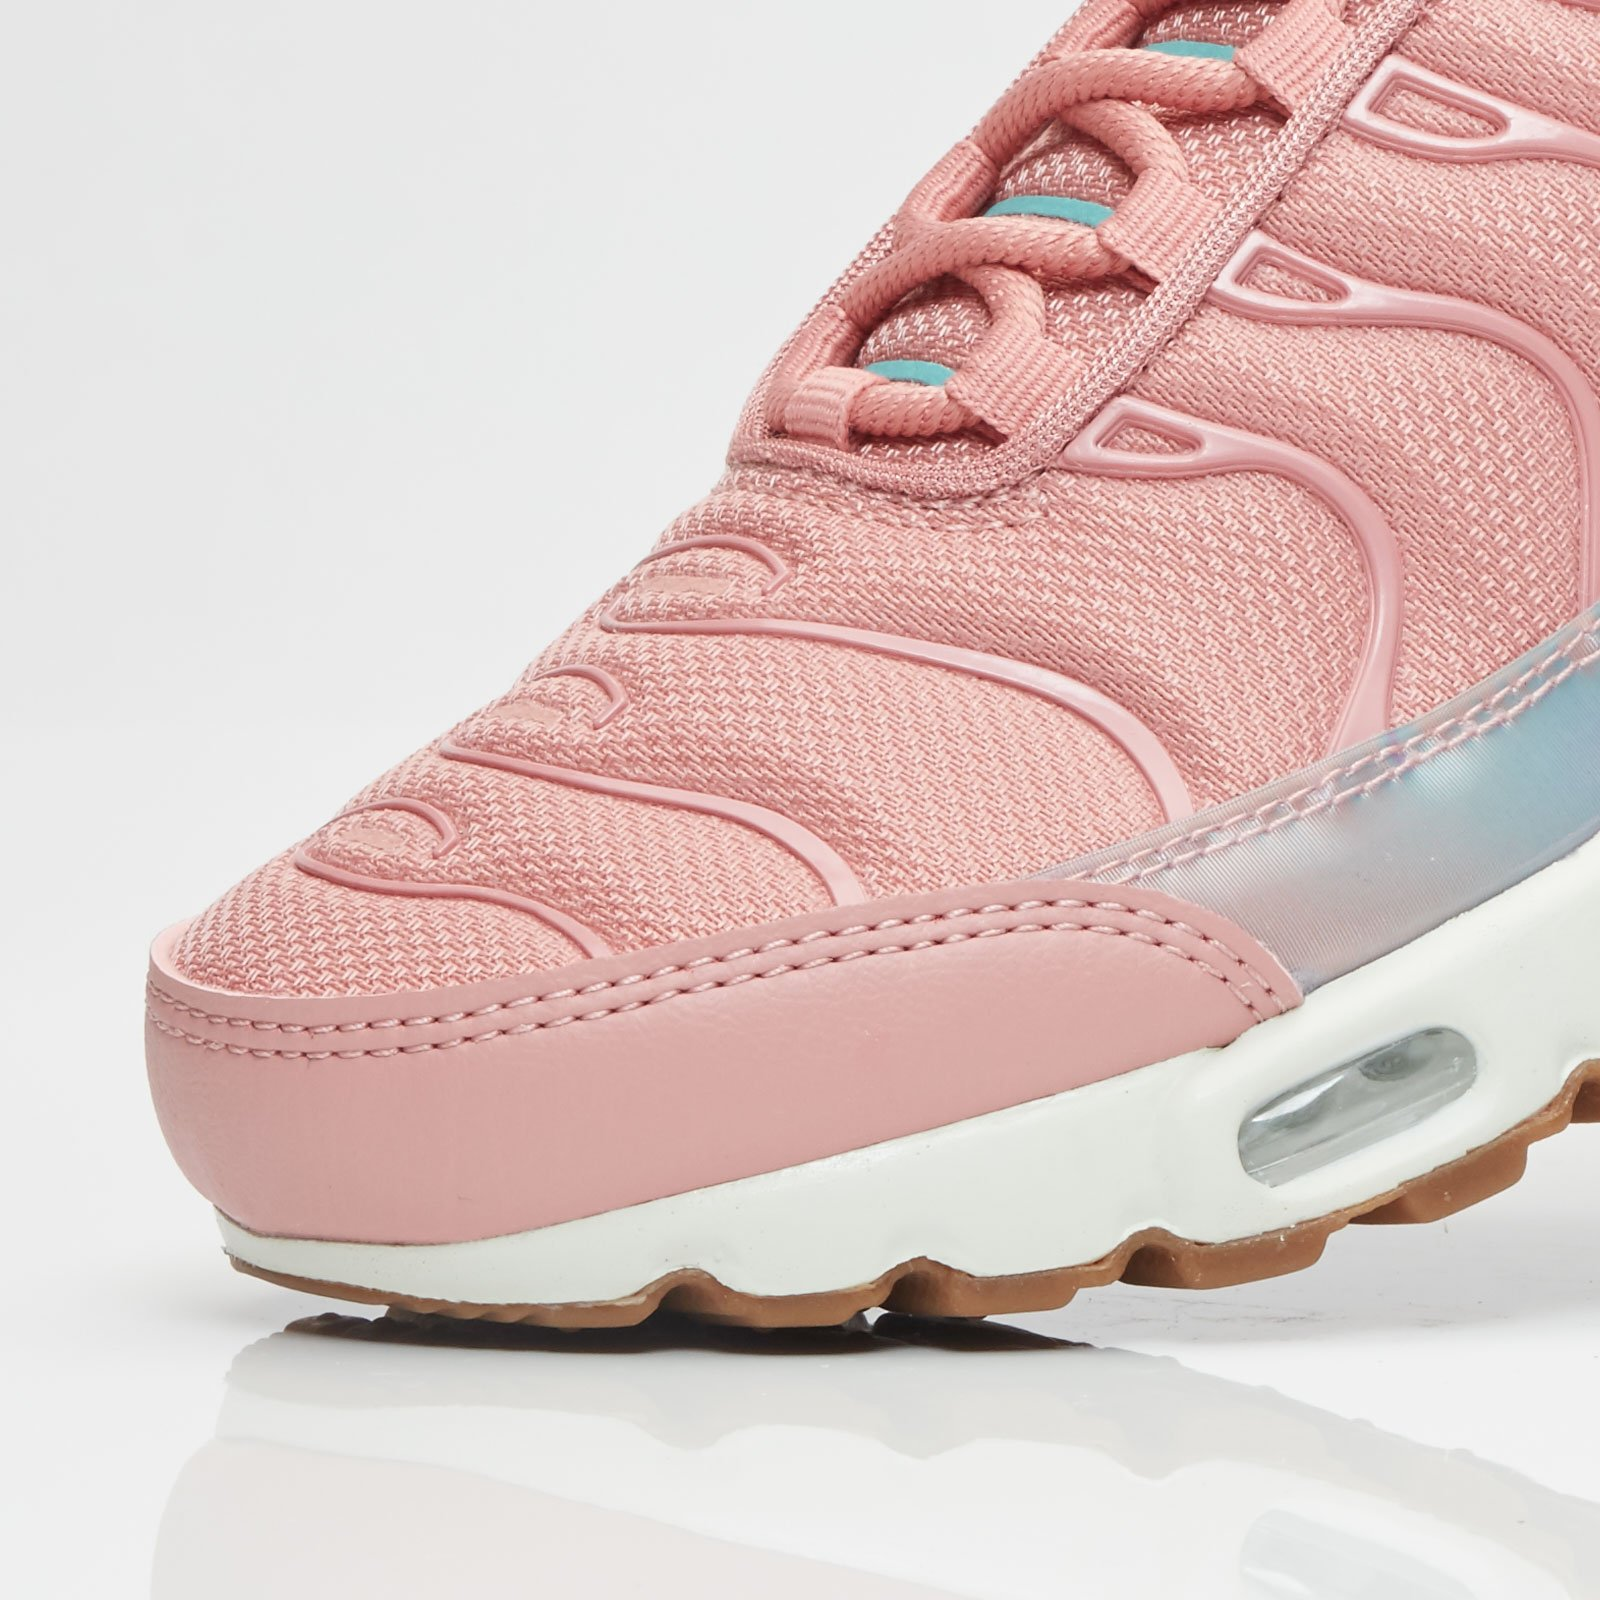 cozy fresh on feet images of new release Nike Wmns Air Max Plus Se - 862201-600 - Sneakersnstuff ...